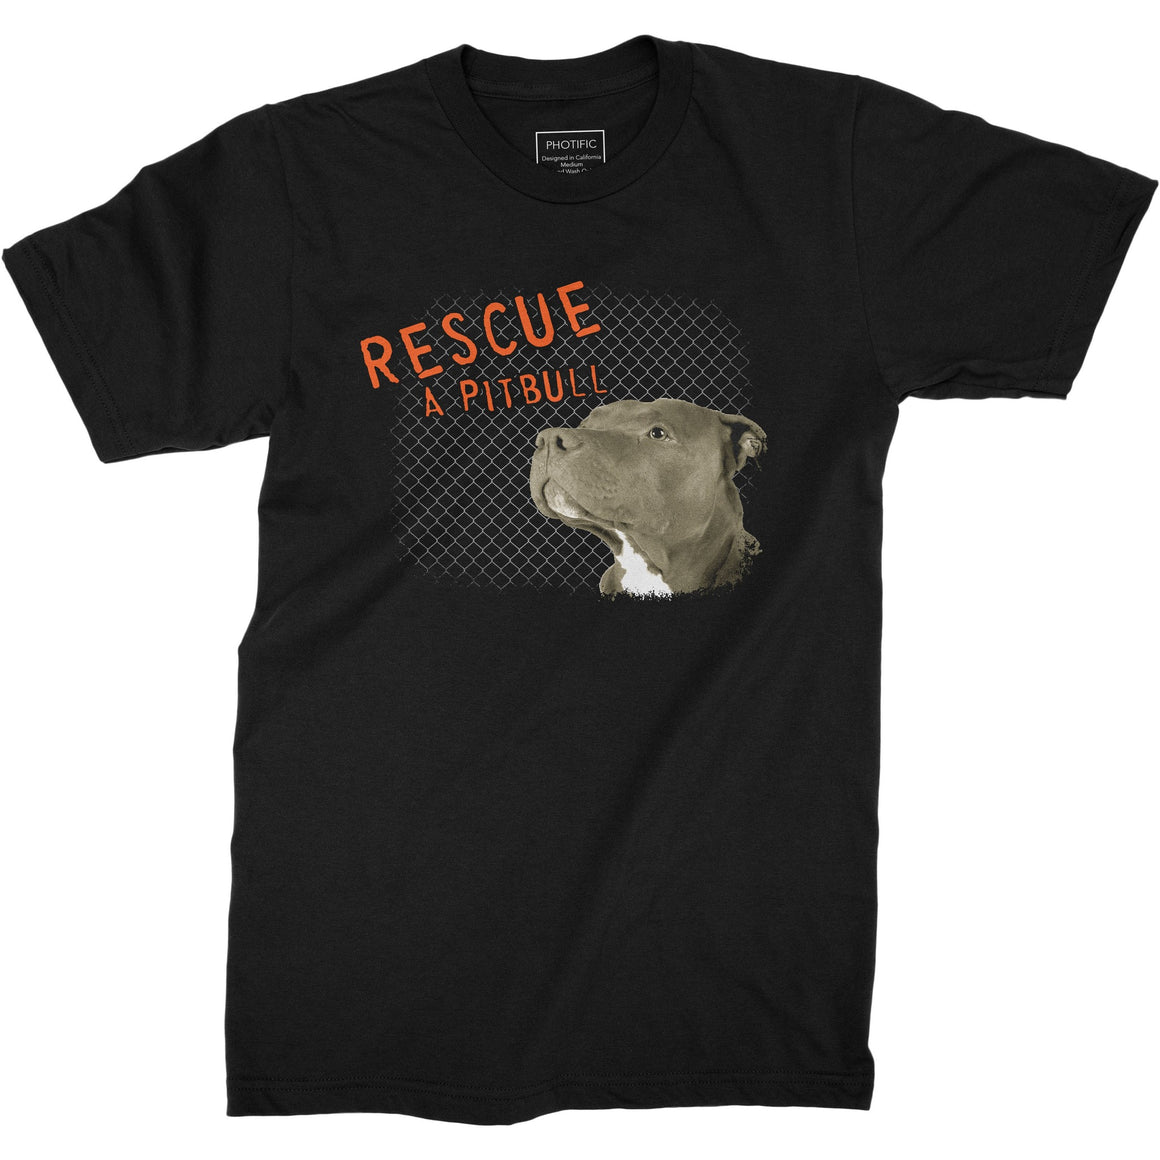 Rescue A Pitbull Black Youth Shirt